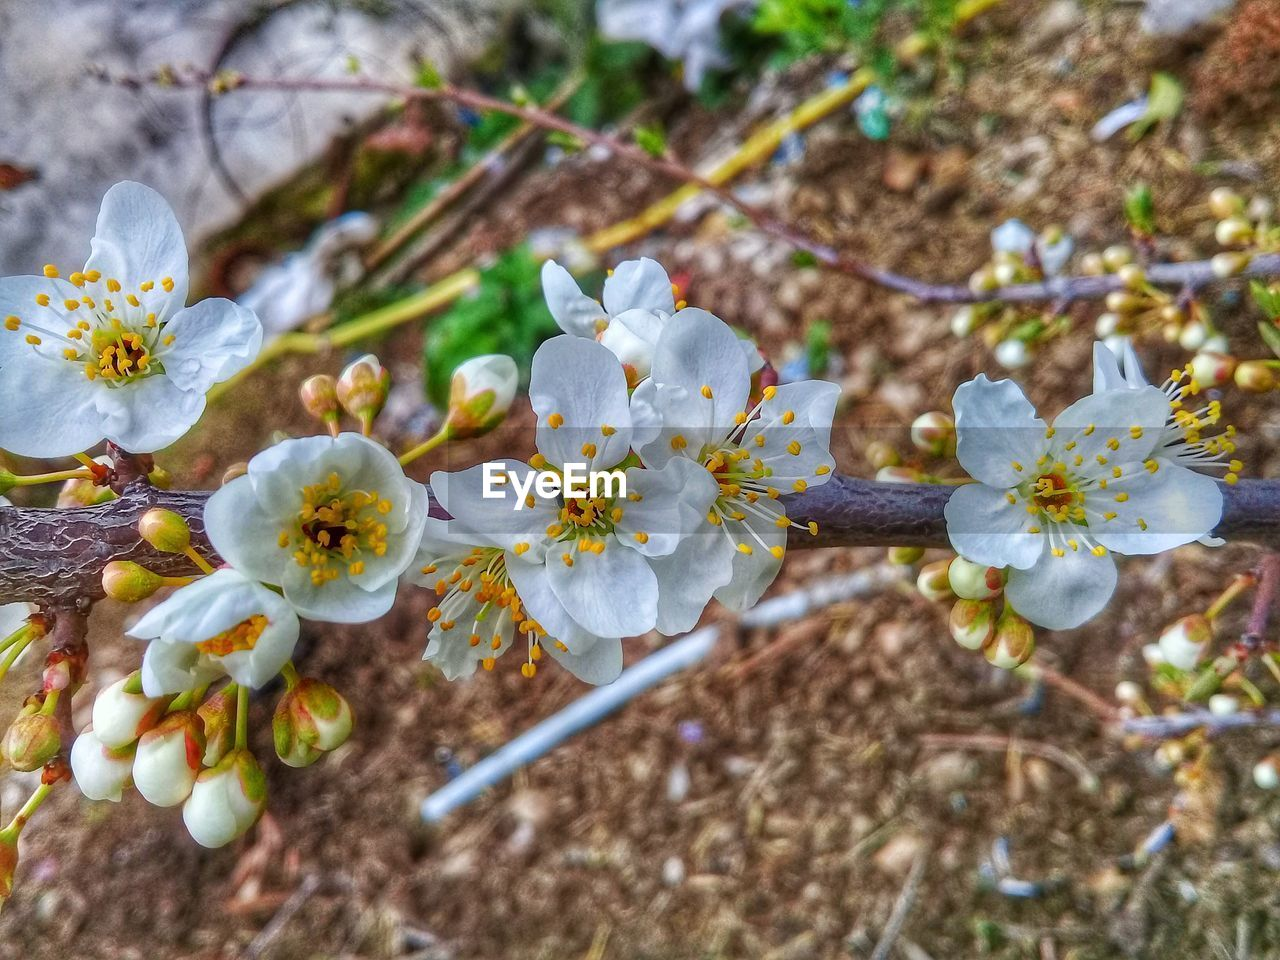 flower, flowering plant, fragility, beauty in nature, vulnerability, growth, plant, freshness, petal, close-up, nature, inflorescence, day, pollen, flower head, springtime, blossom, selective focus, focus on foreground, no people, outdoors, cherry blossom, spring